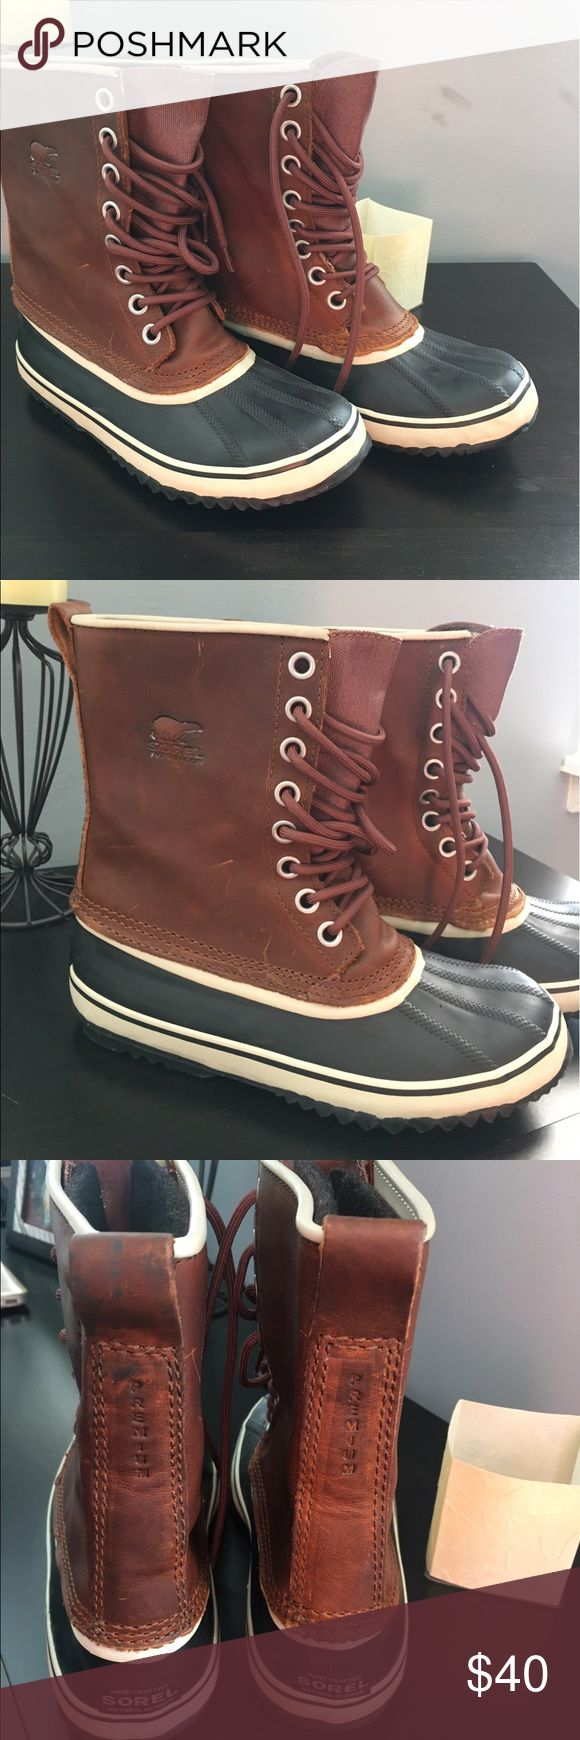 🔥💥SOREL women's duck boots🔥💥 Like brand new! Worn once for a few hours Sorel Shoes Winter & Rain Boots